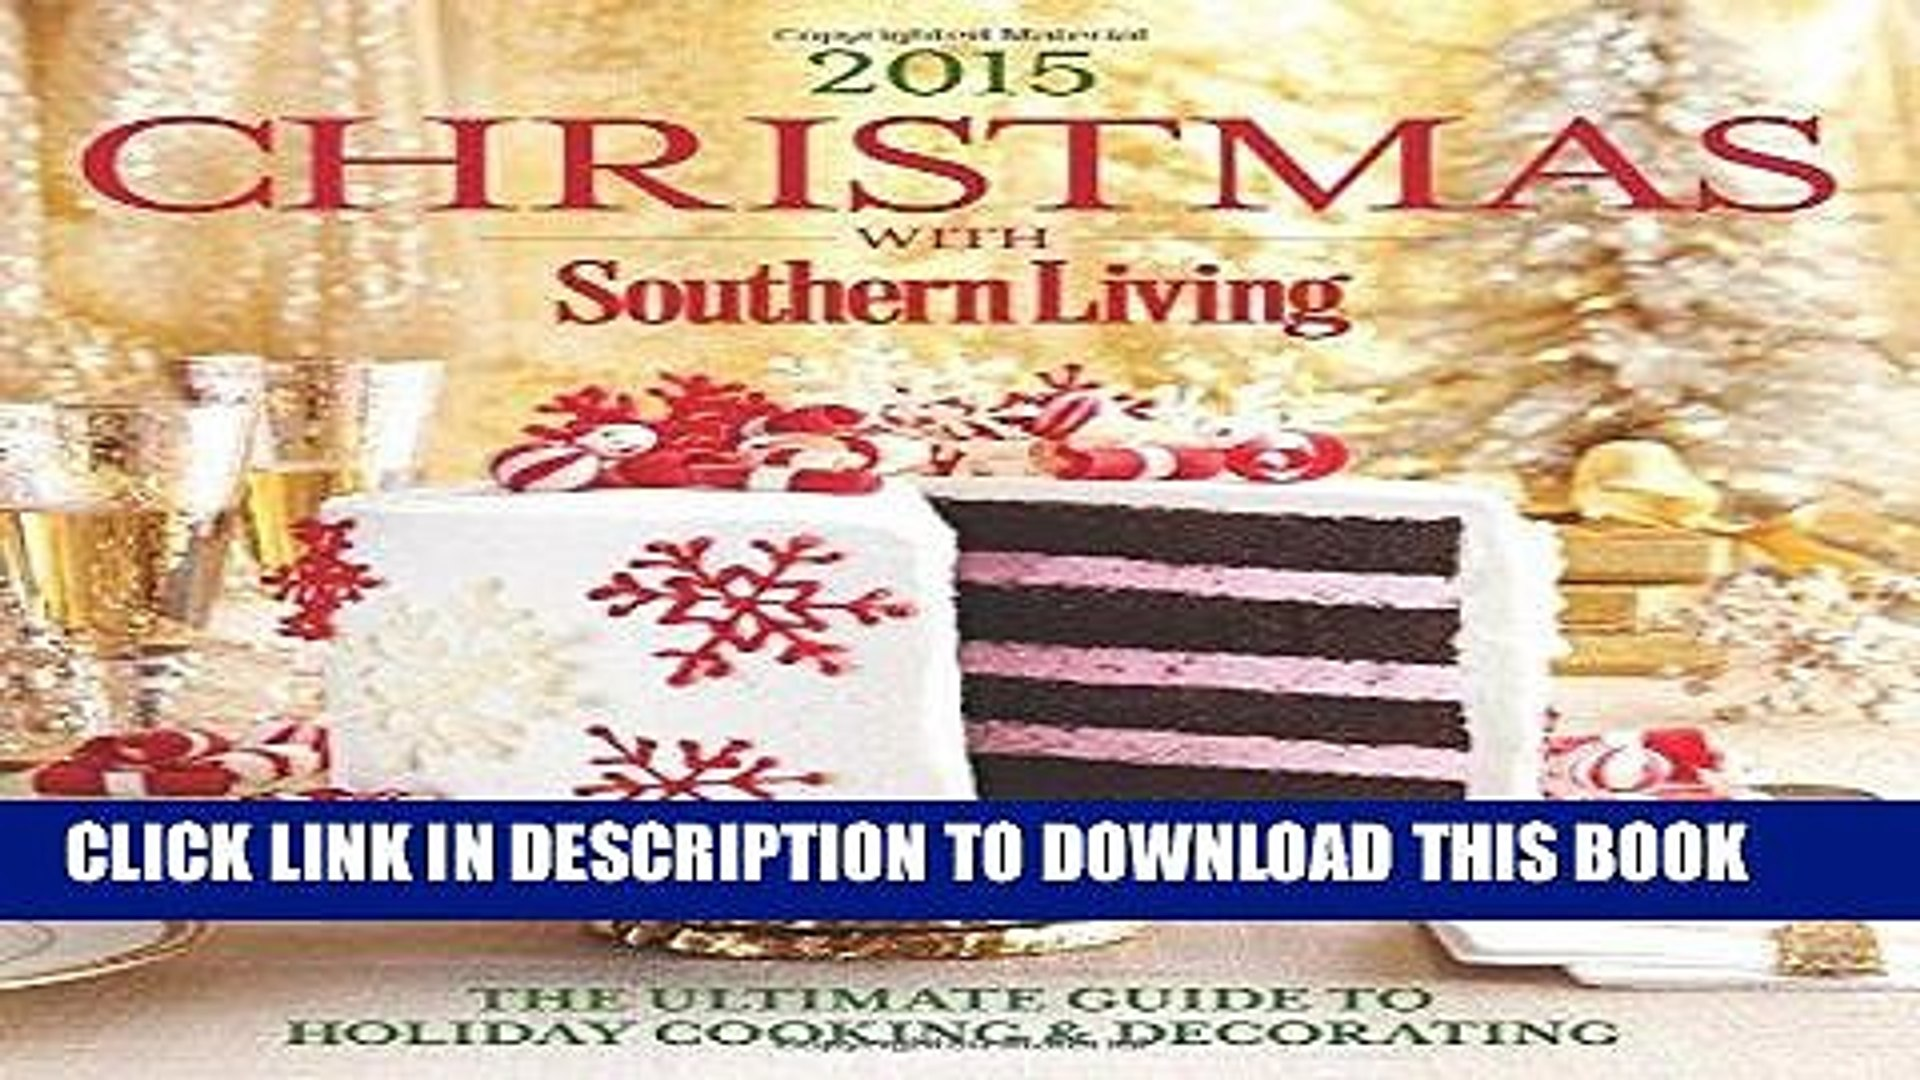 Best Seller Christmas With Southern Living 2015 The Ultimate Guide To Holiday Cooking Video Dailymotion